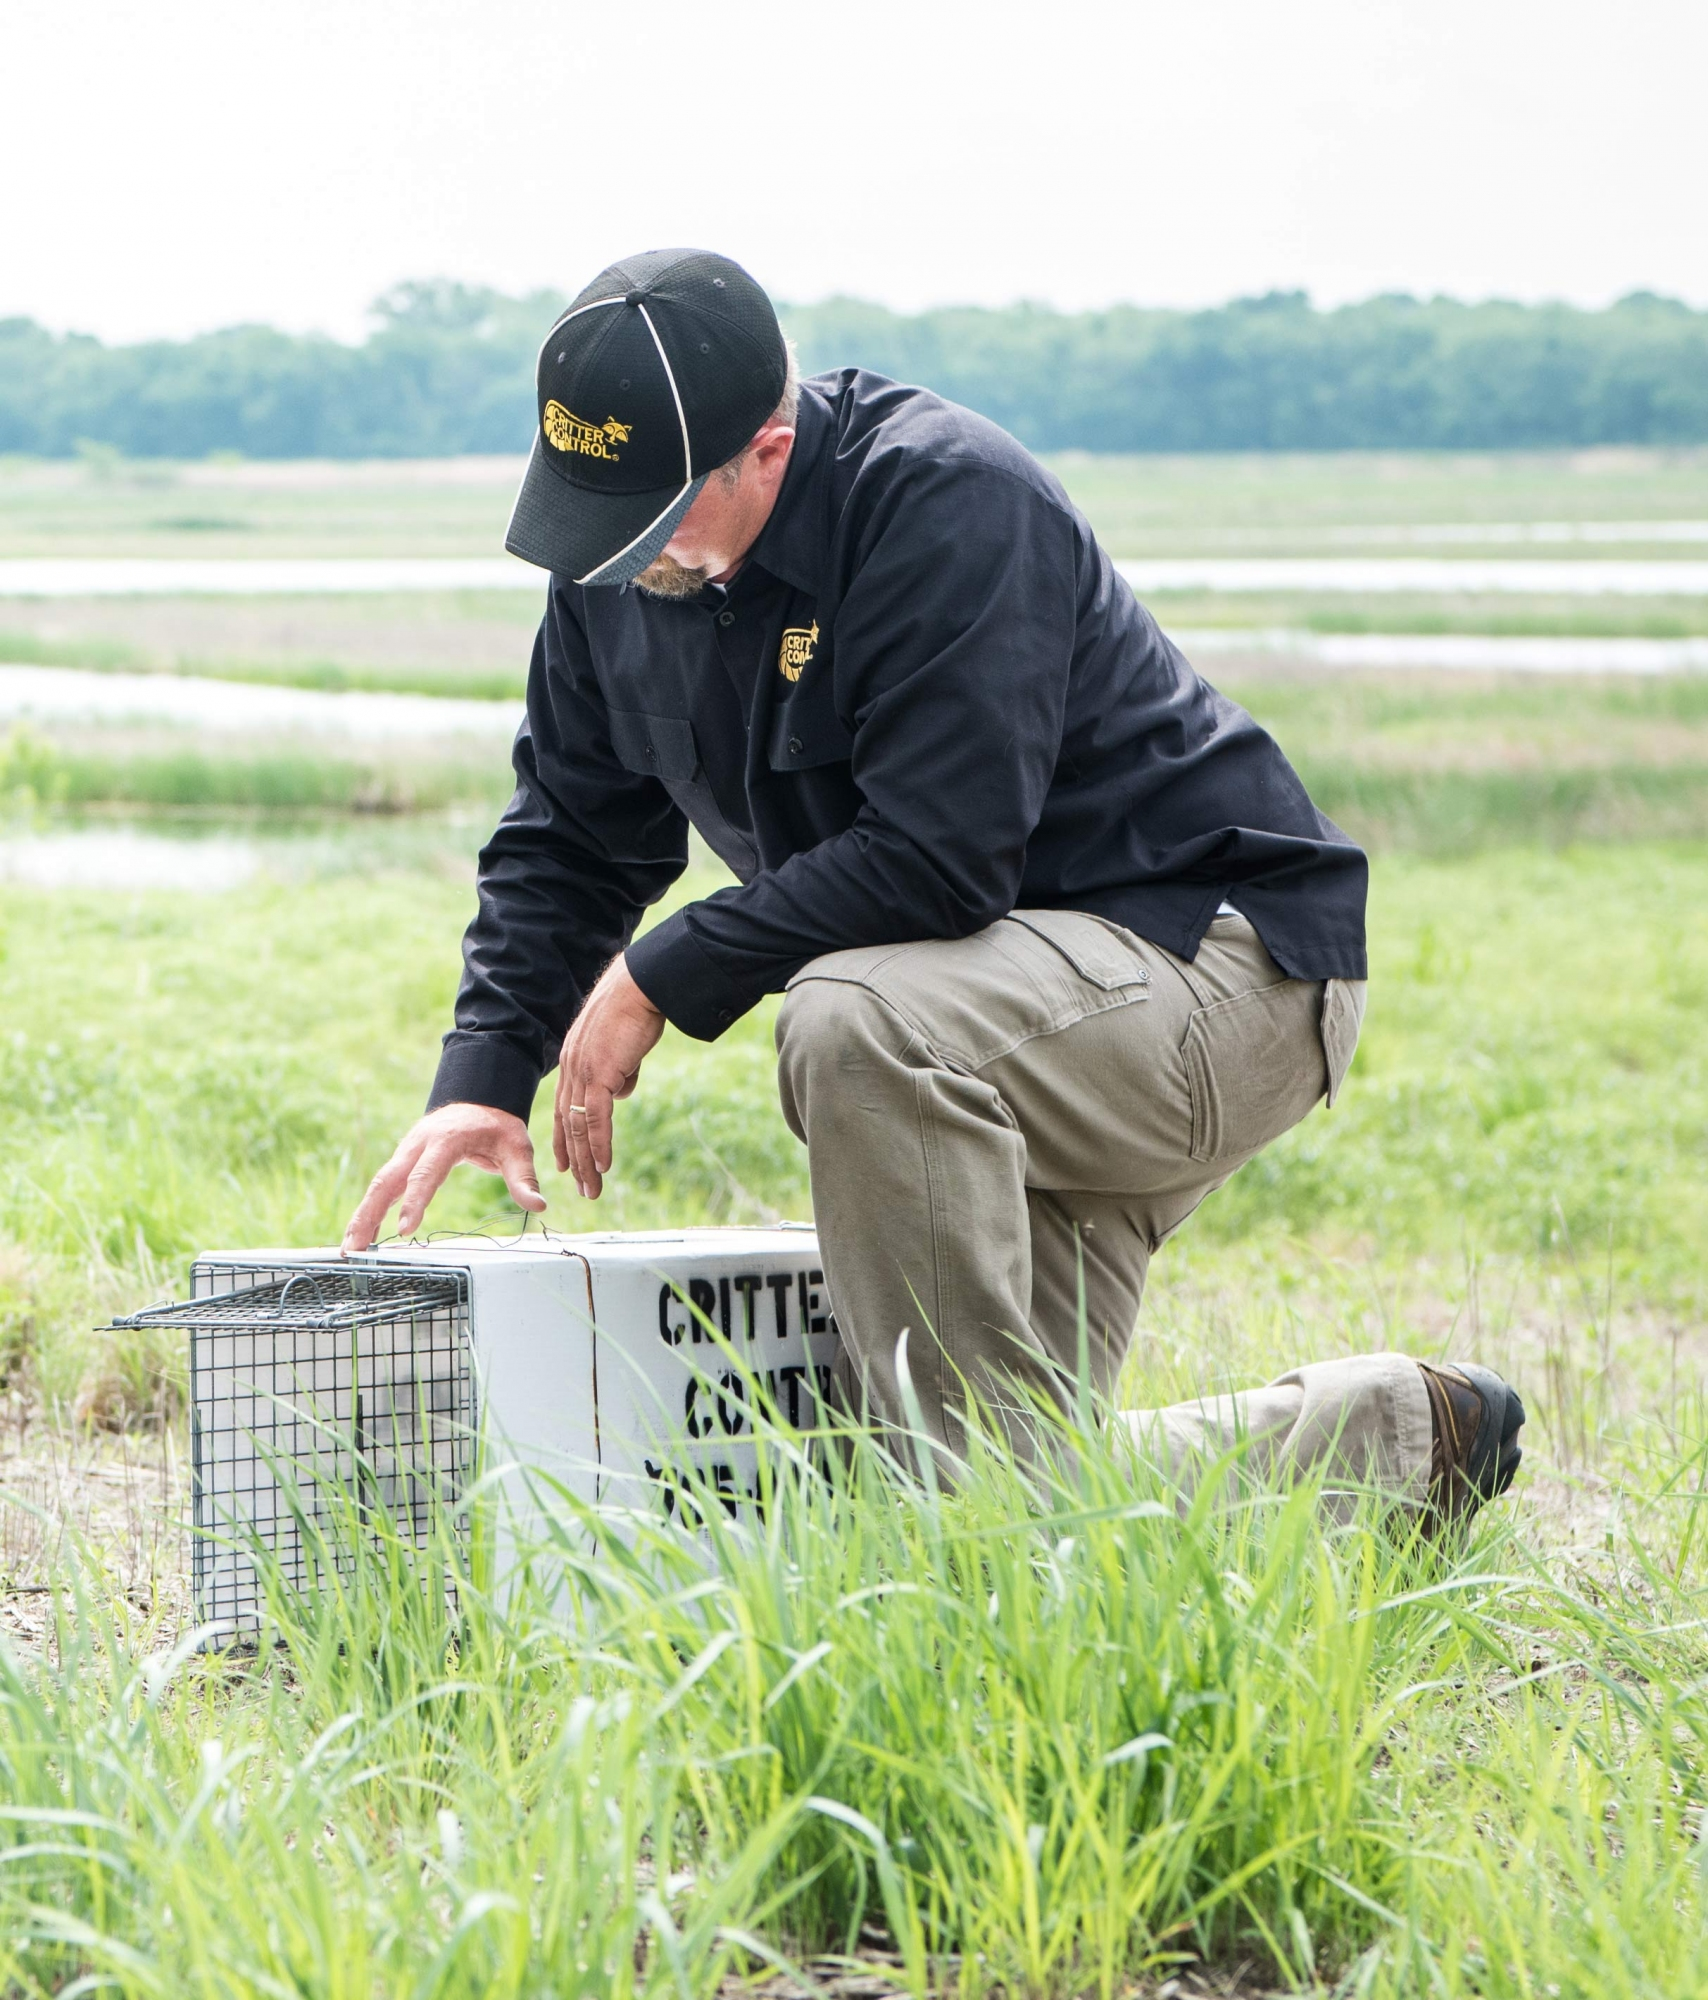 Critter Control of Kaw Valley Owner with Wildlife Live Trap